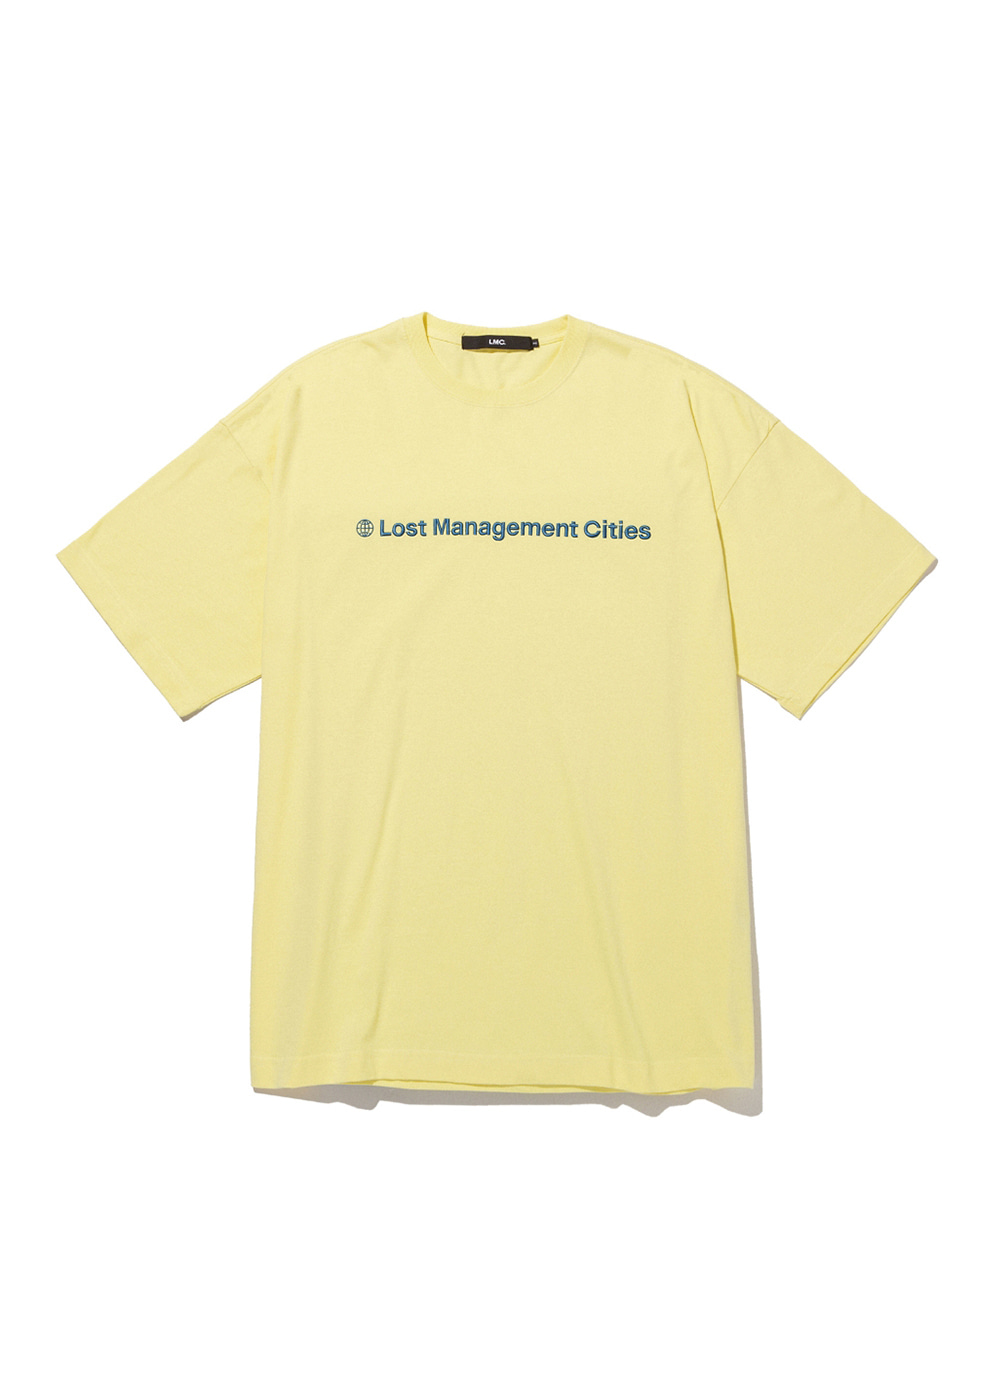 LMC FN OG OVERSIZED TEE lt. yellow